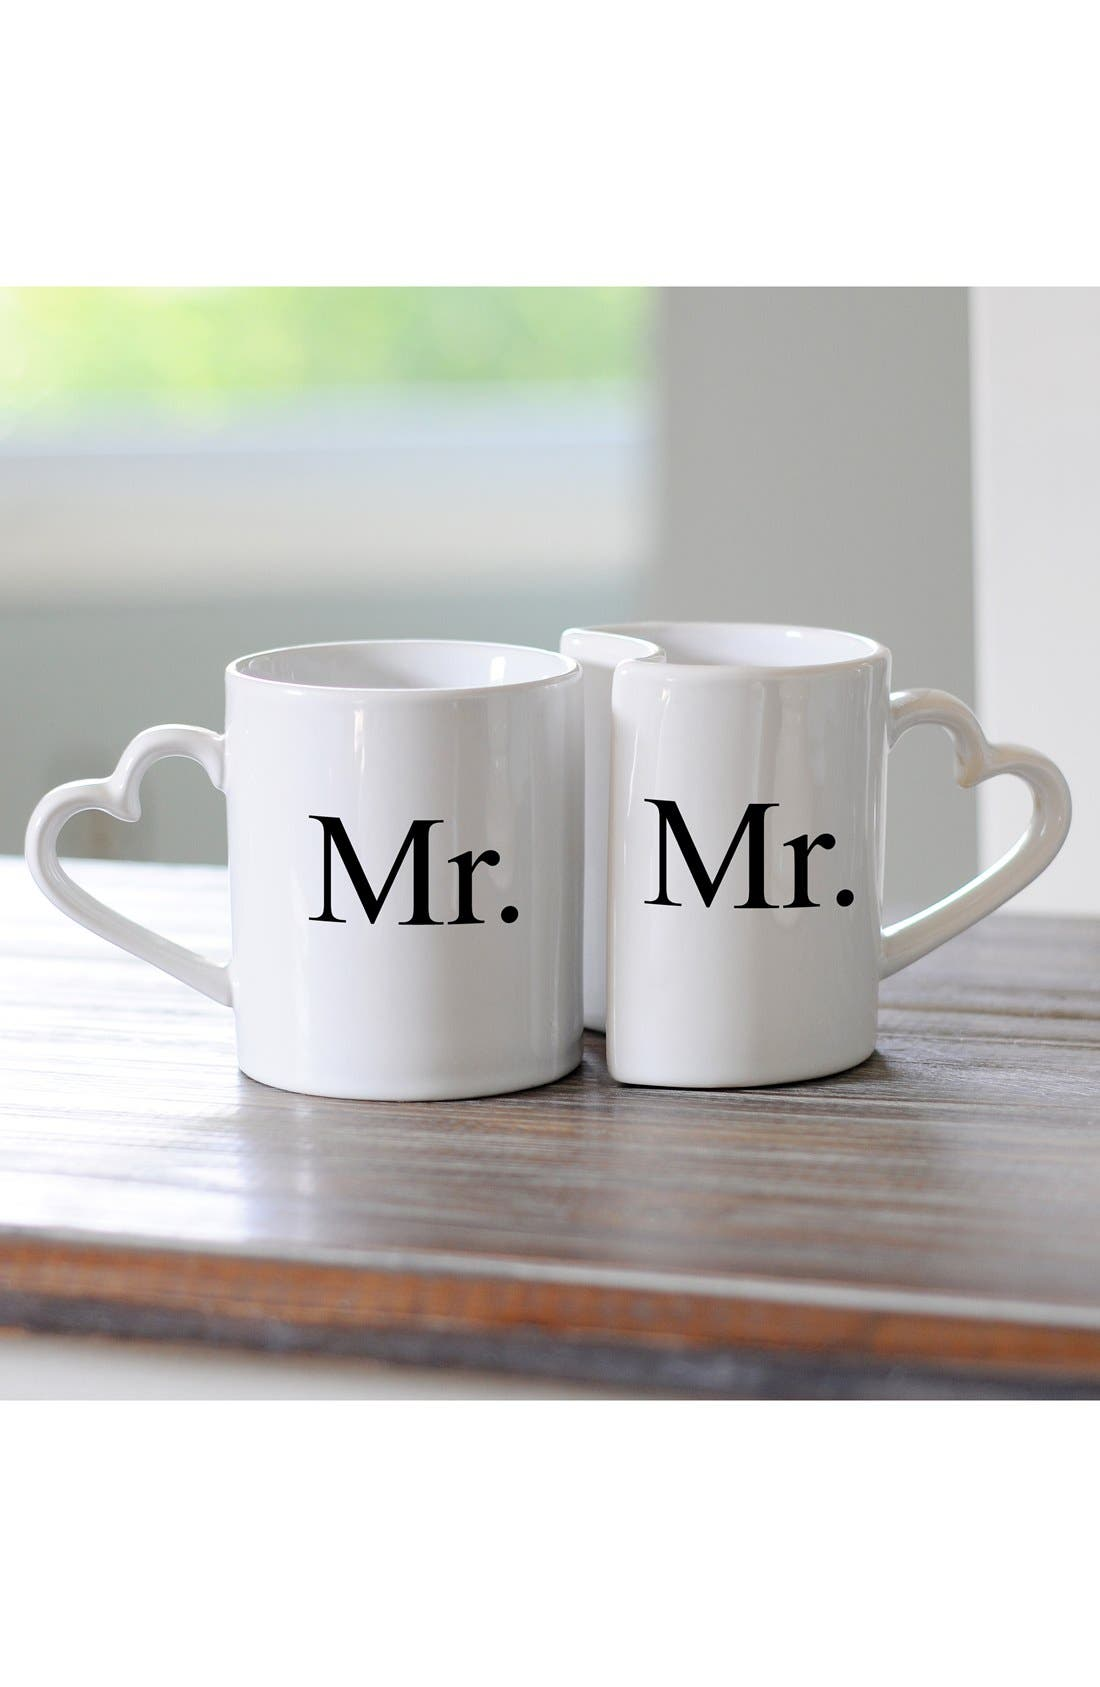 Alternate Image 1 Selected - Cathy's Concepts 'For the Couple' Ceramic Coffee Mugs (Set of 2)